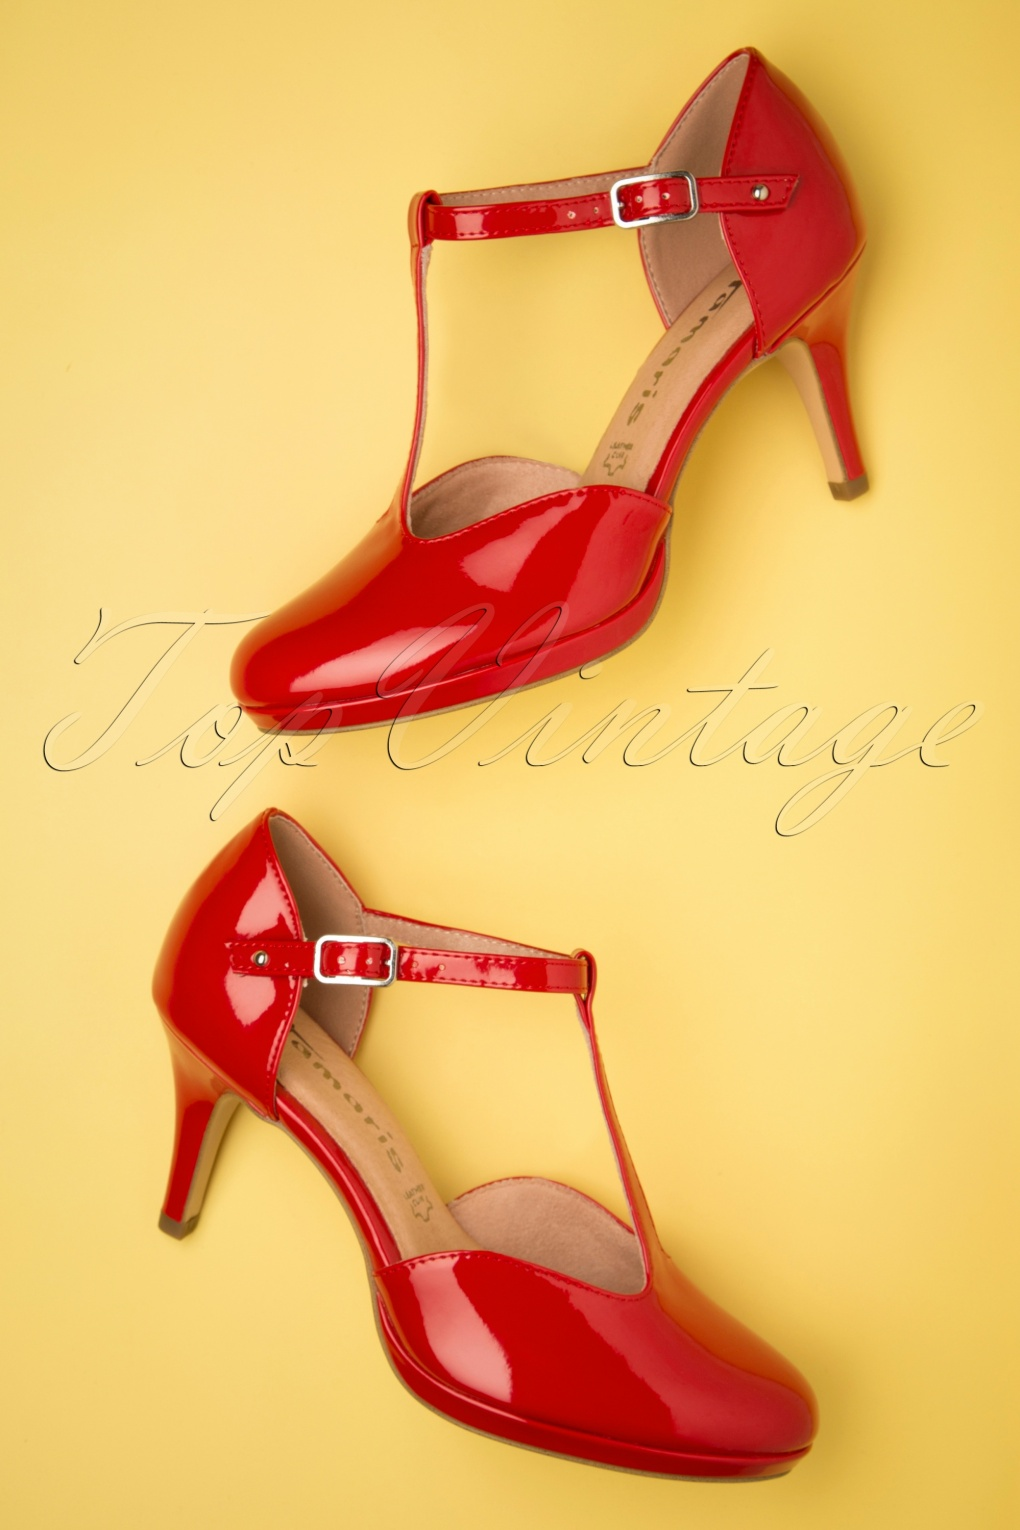 1950s Style Shoes | Heels, Flats, Saddle Shoes 50s Jenny Lacquer T-Strap Pumps in Chili £38.96 AT vintagedancer.com